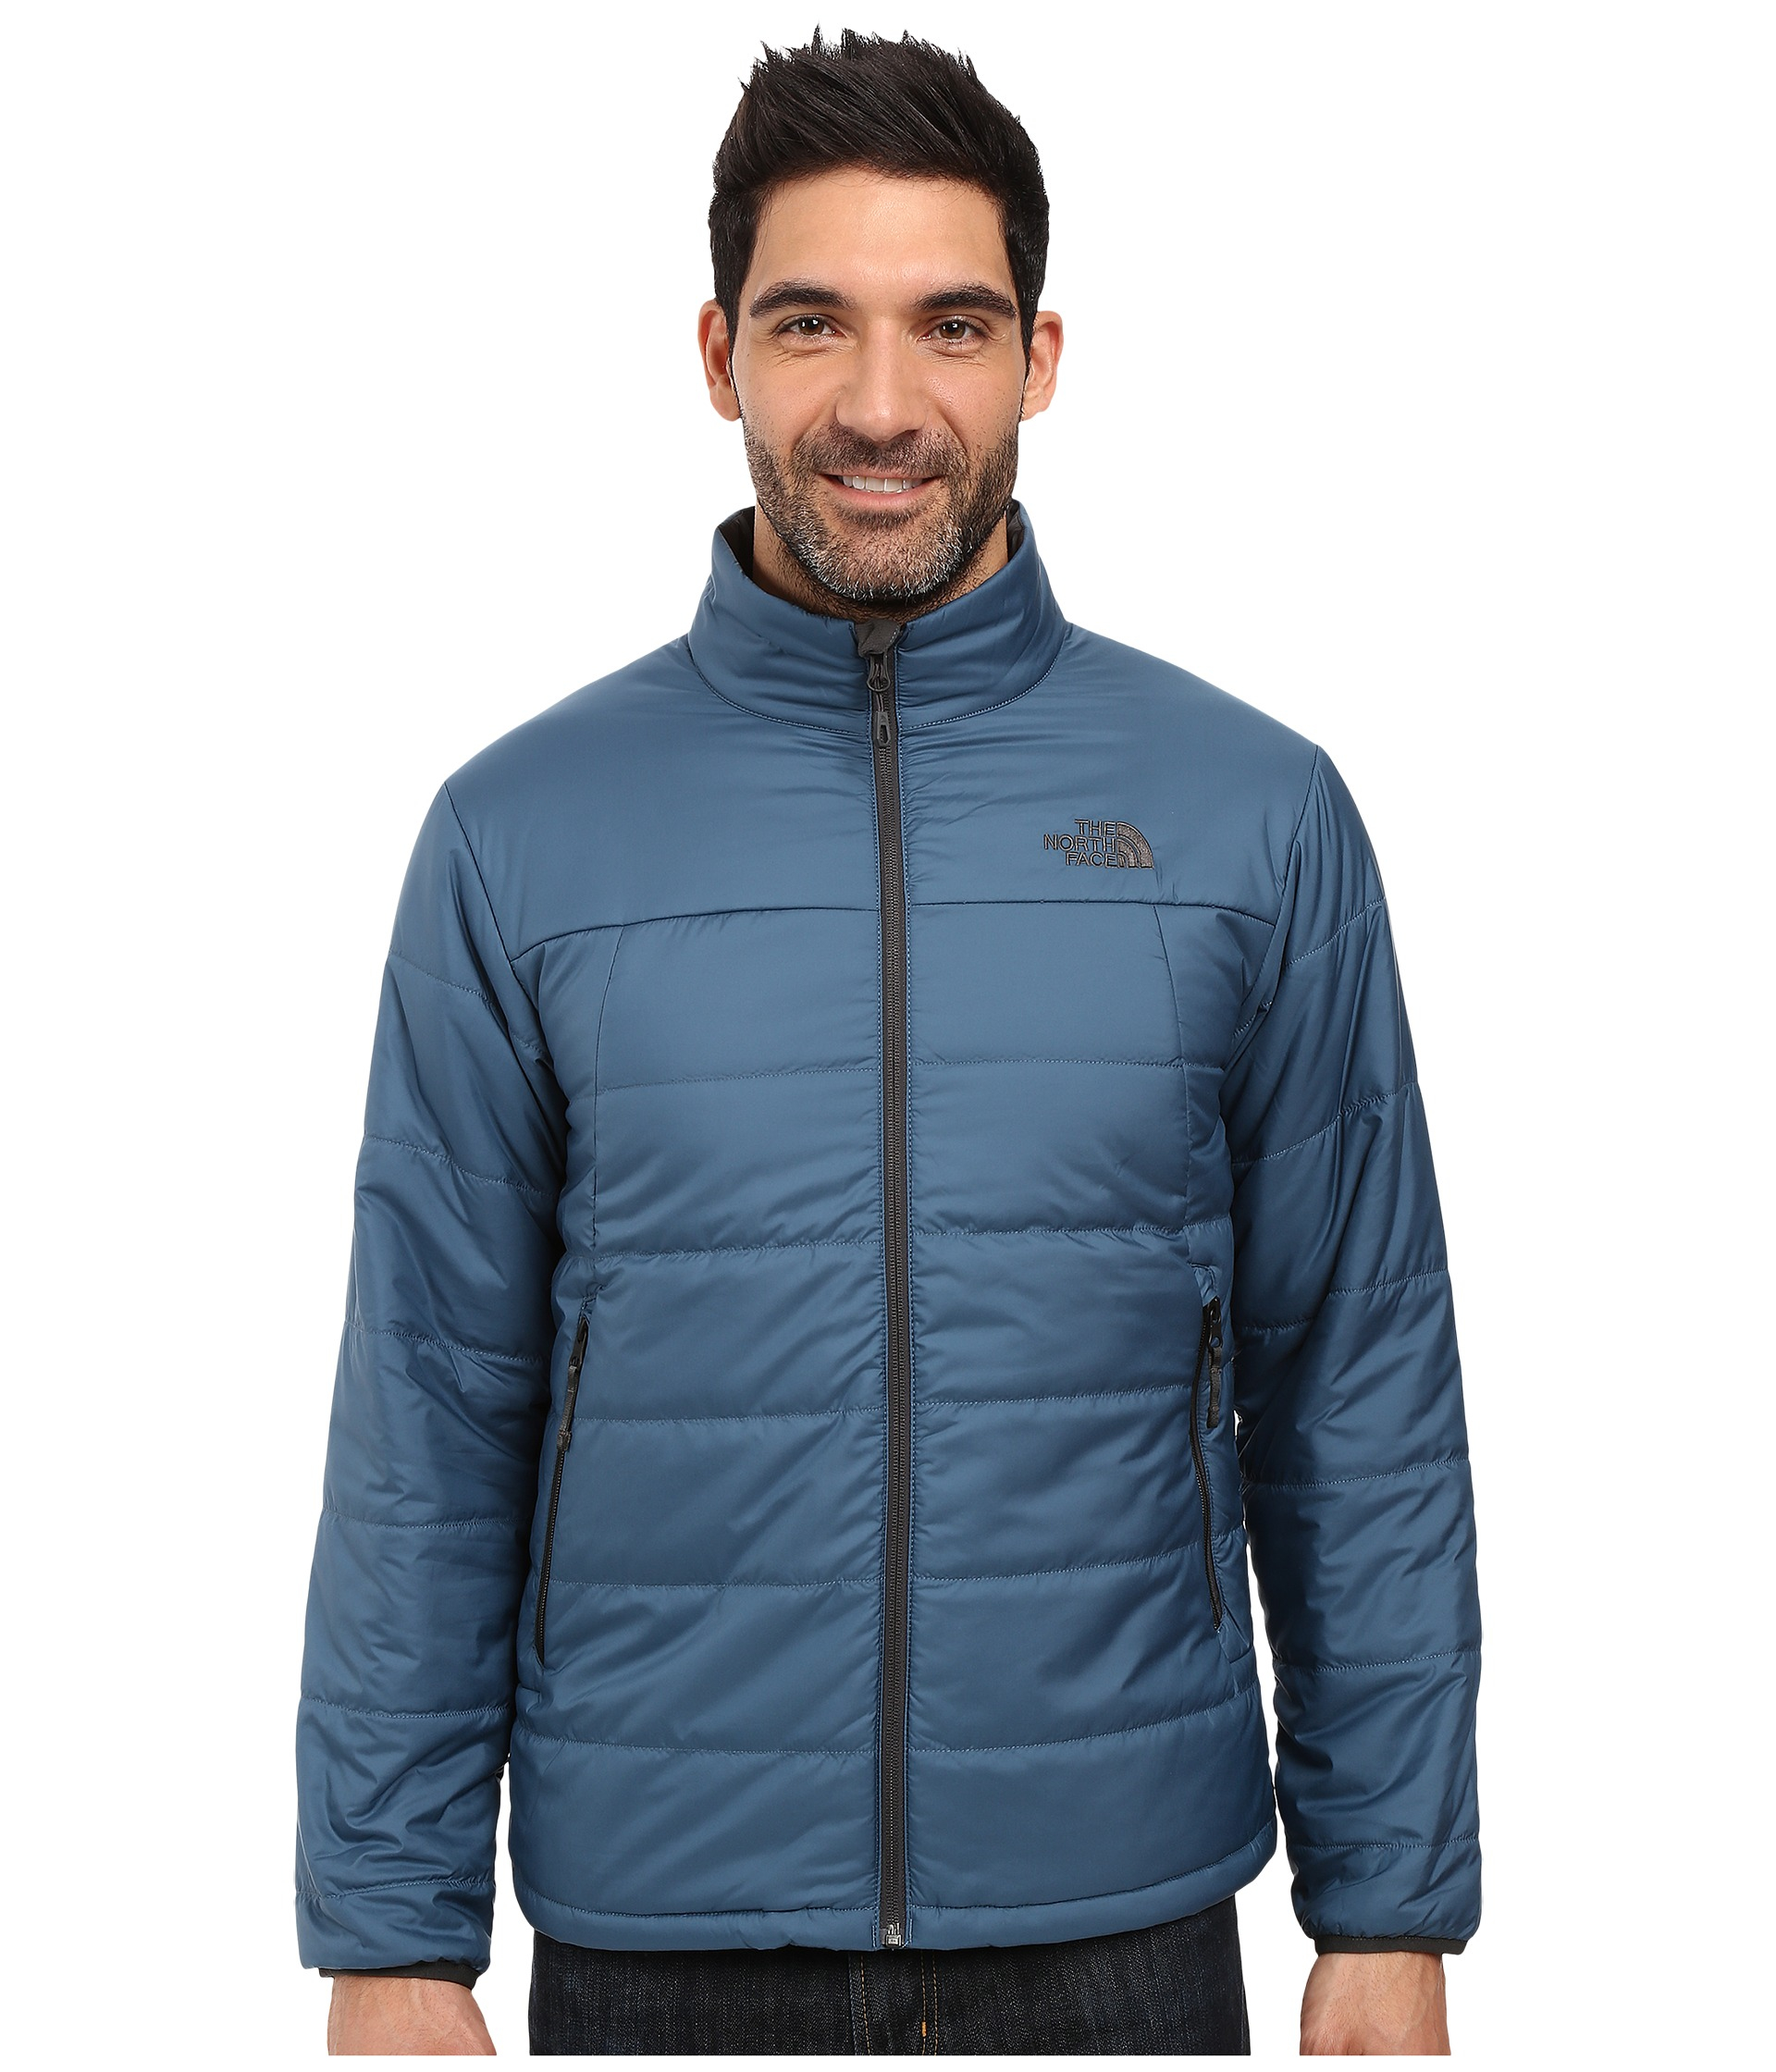 7c3849ae63fe Lyst - The North Face Bombay Jacket for Men